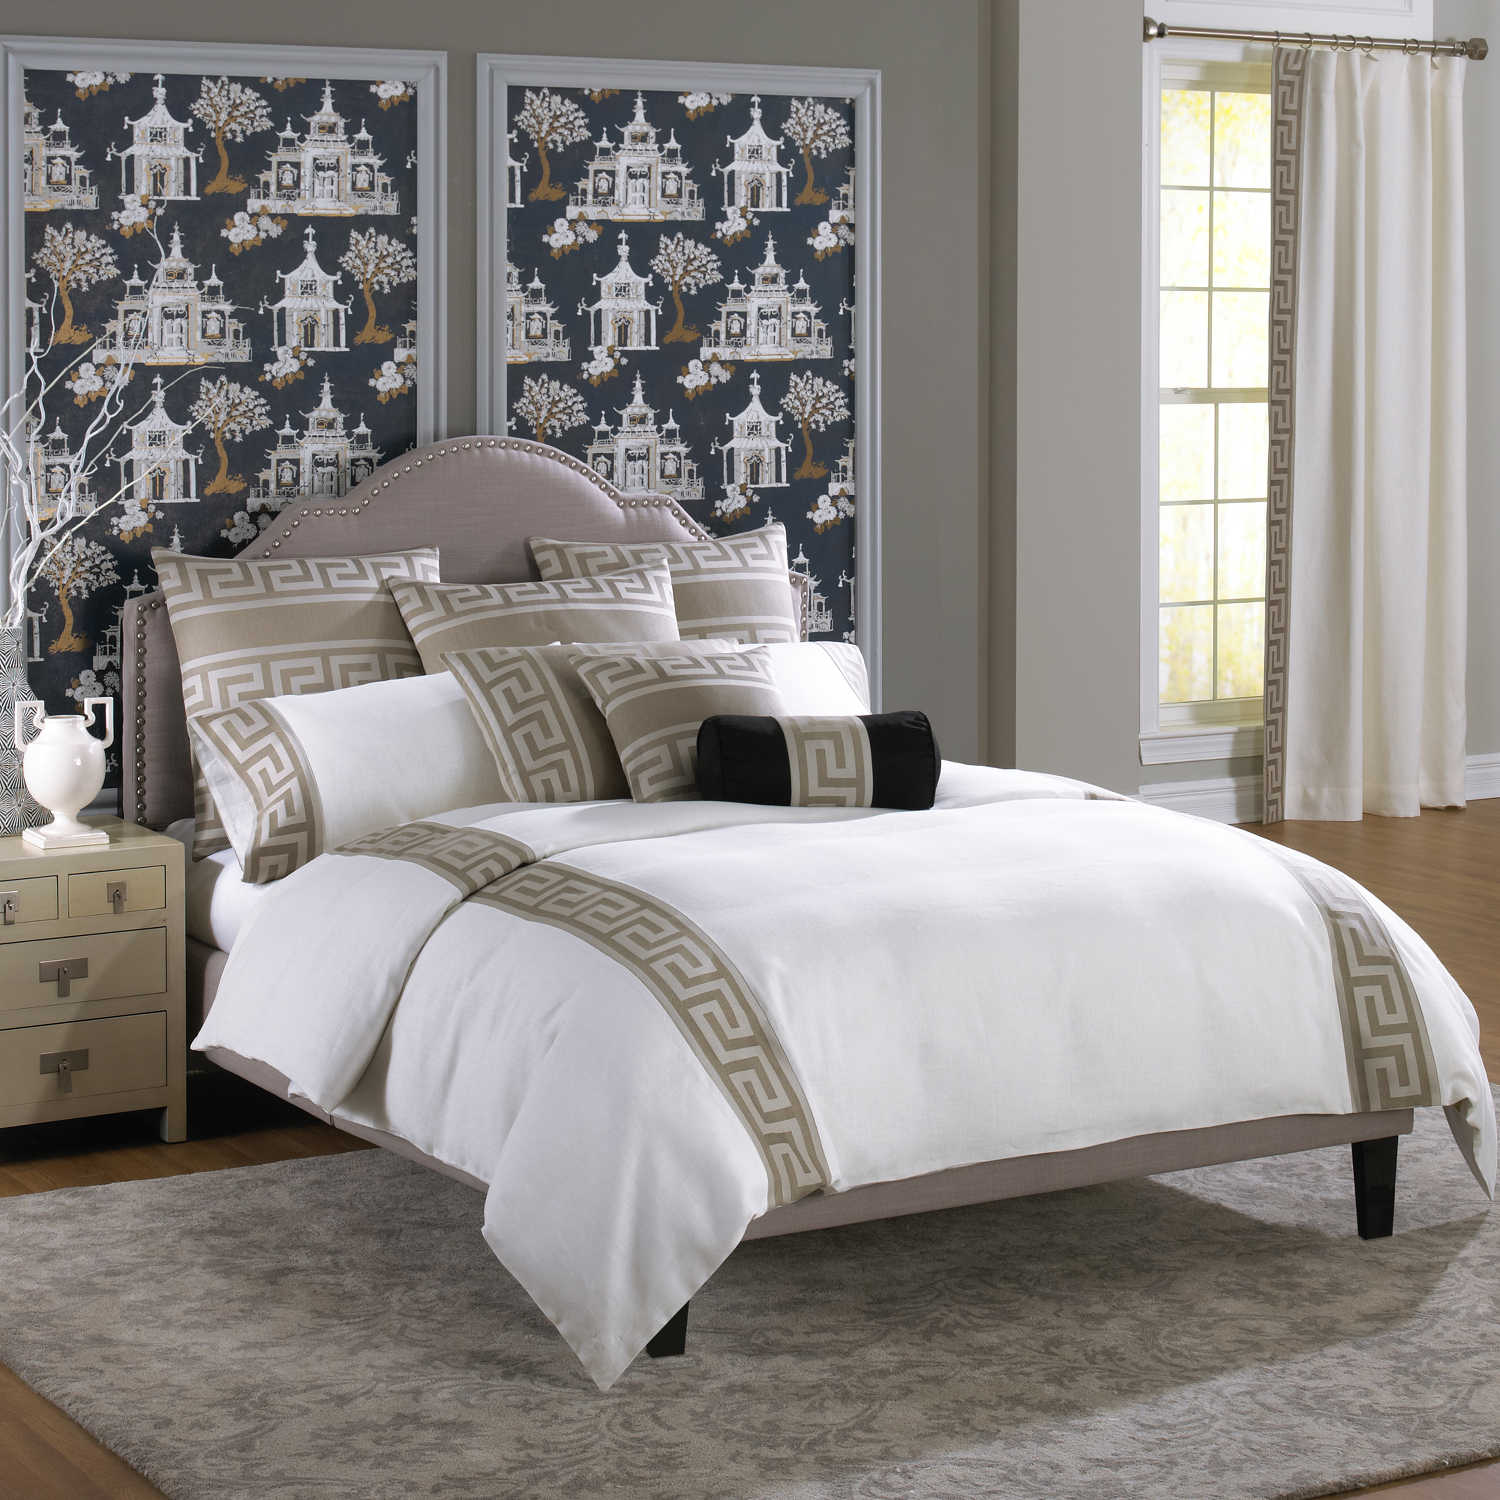 wildcat territory bedding milos key pewter collection -